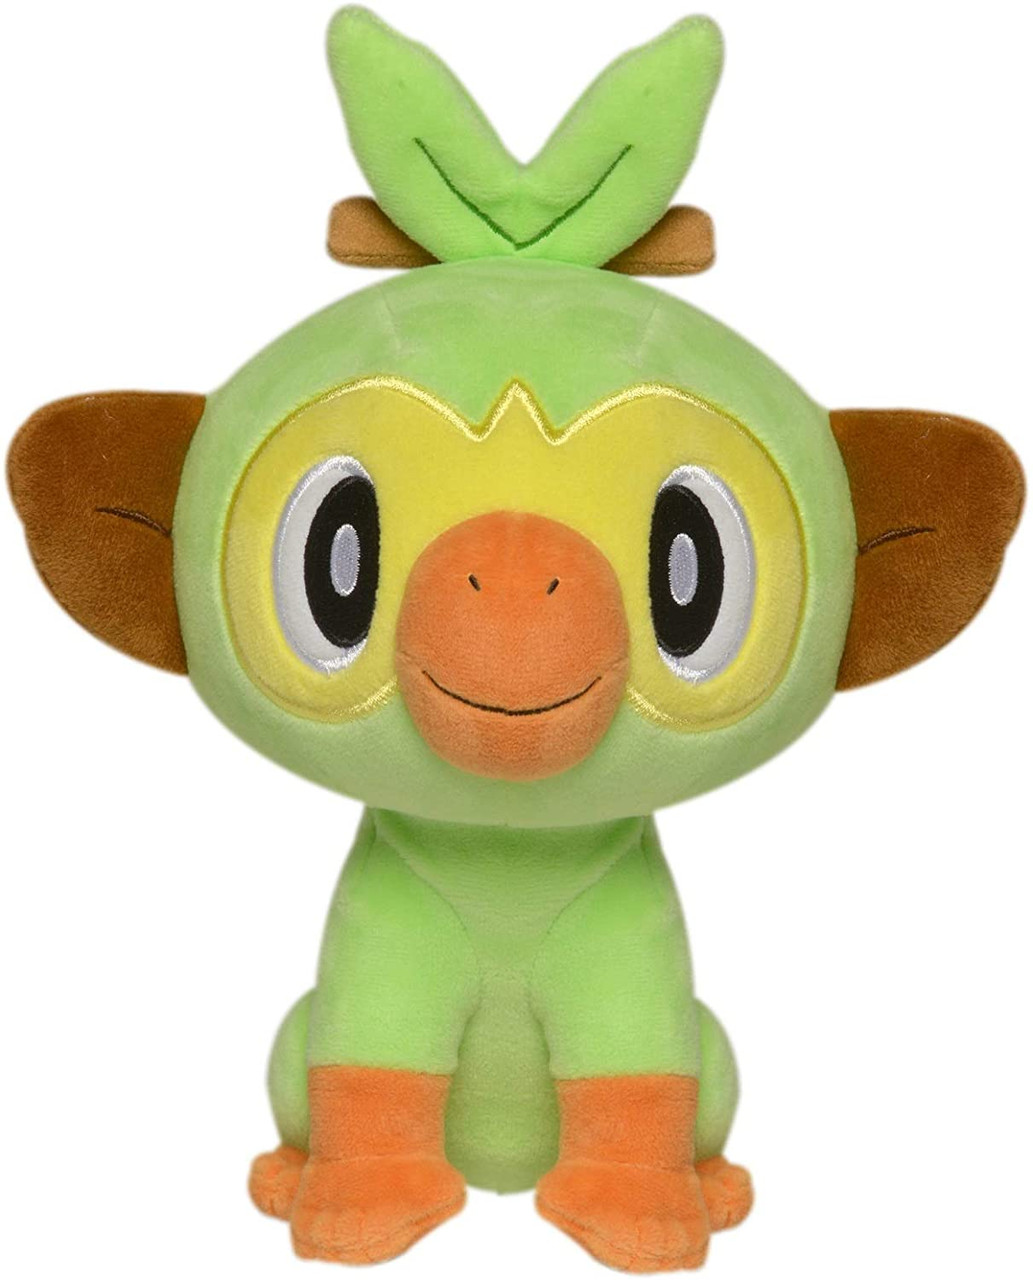 Grookey Plush Toy - Pokemon - Galar Region - 8 Inch